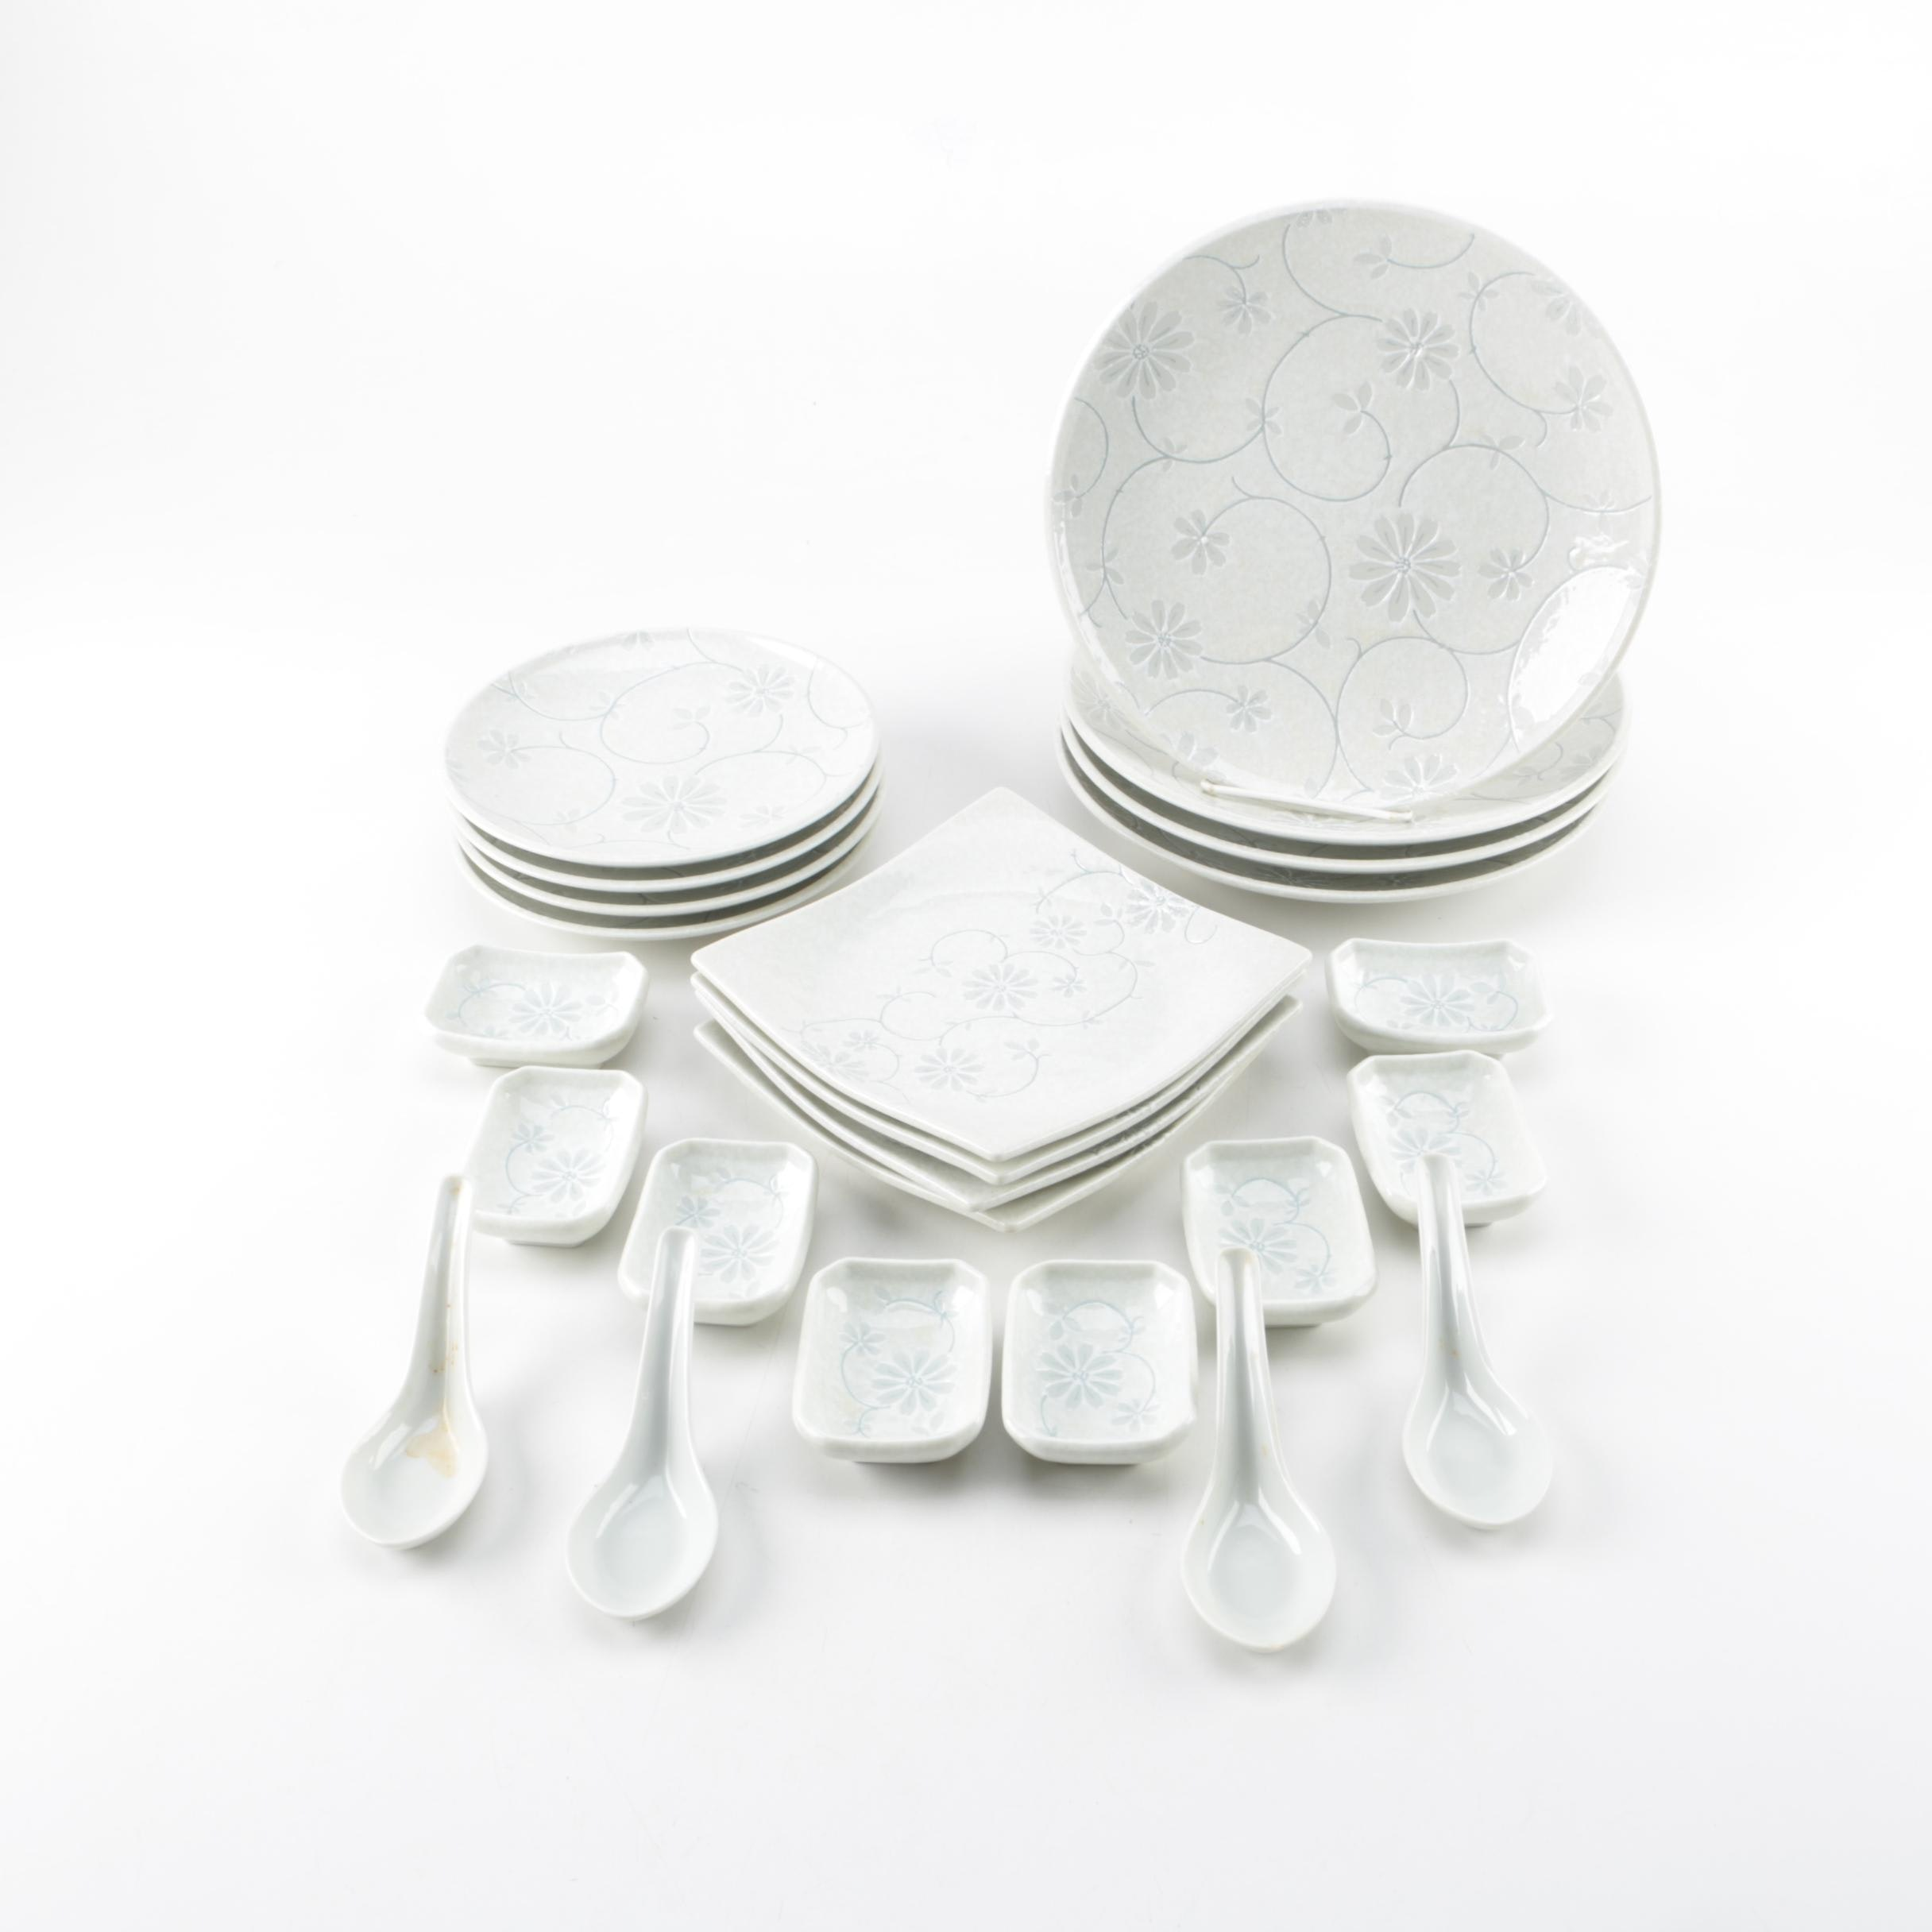 Contemporary Japanese Tableware